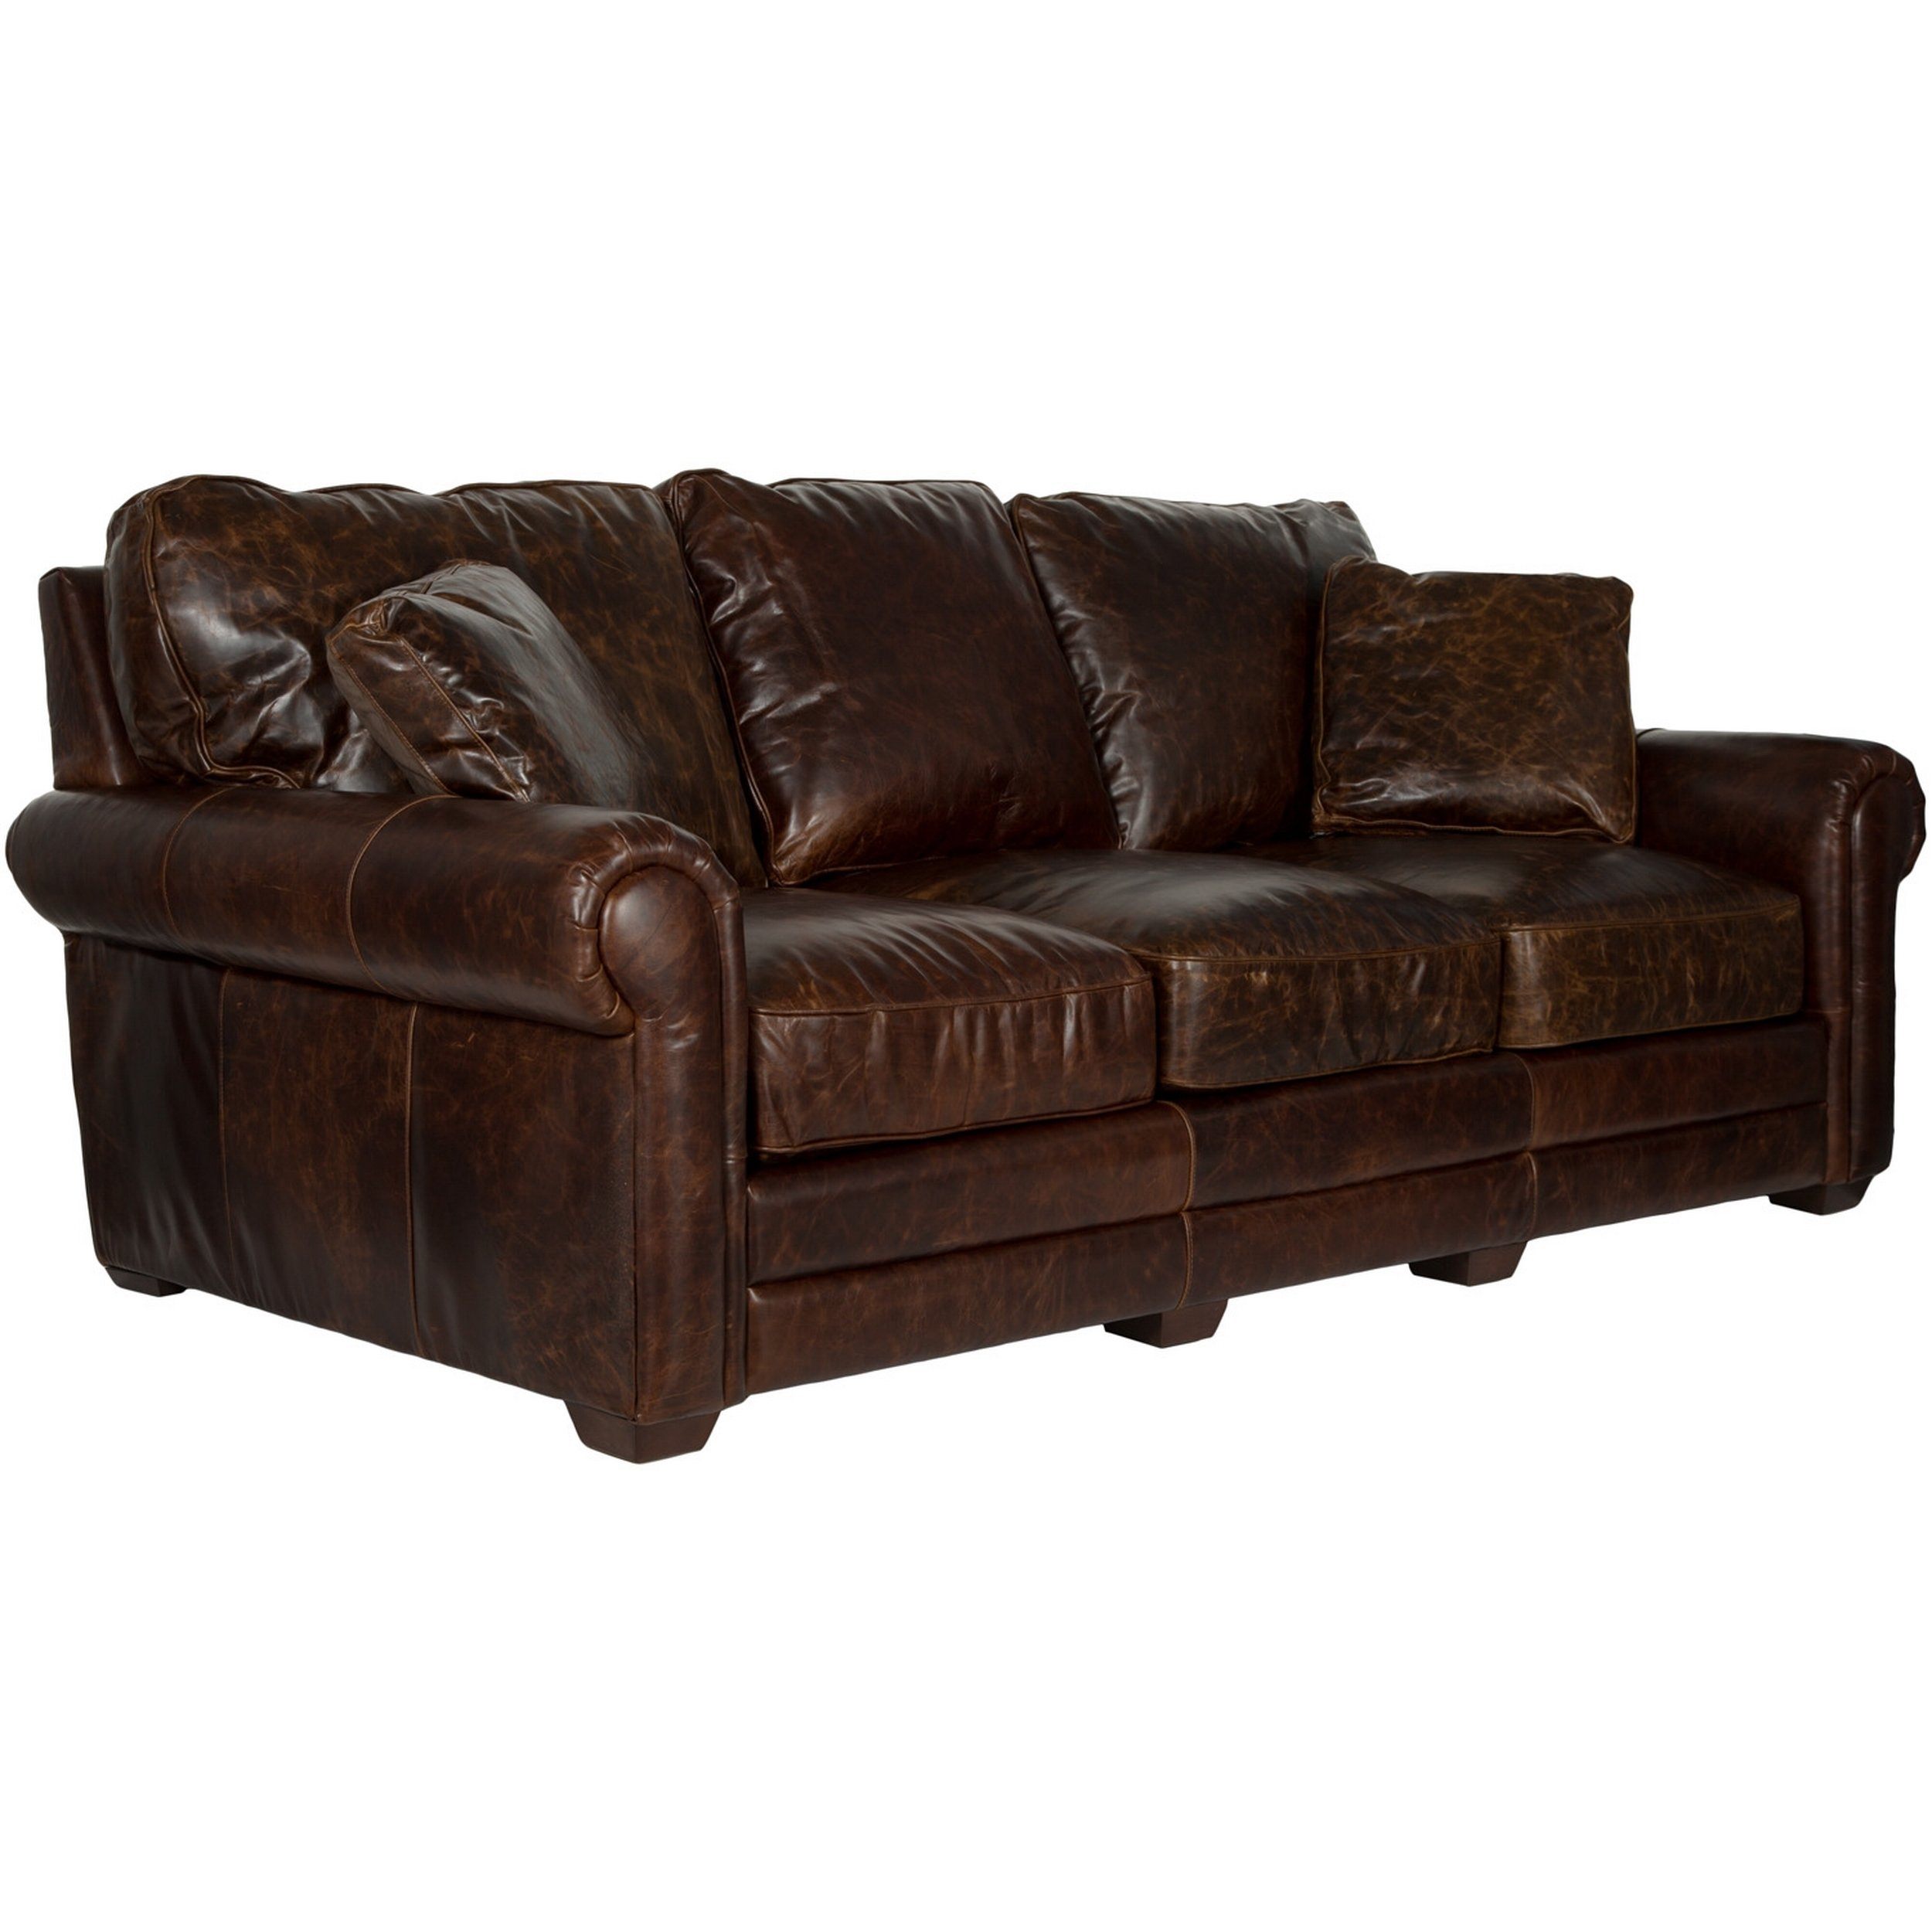 Shop Safavieh Couture High Line Collection Walter Cocoa Leather Sofa Pertaining To Walter Leather Sofa Chairs (Photo 11 of 20)